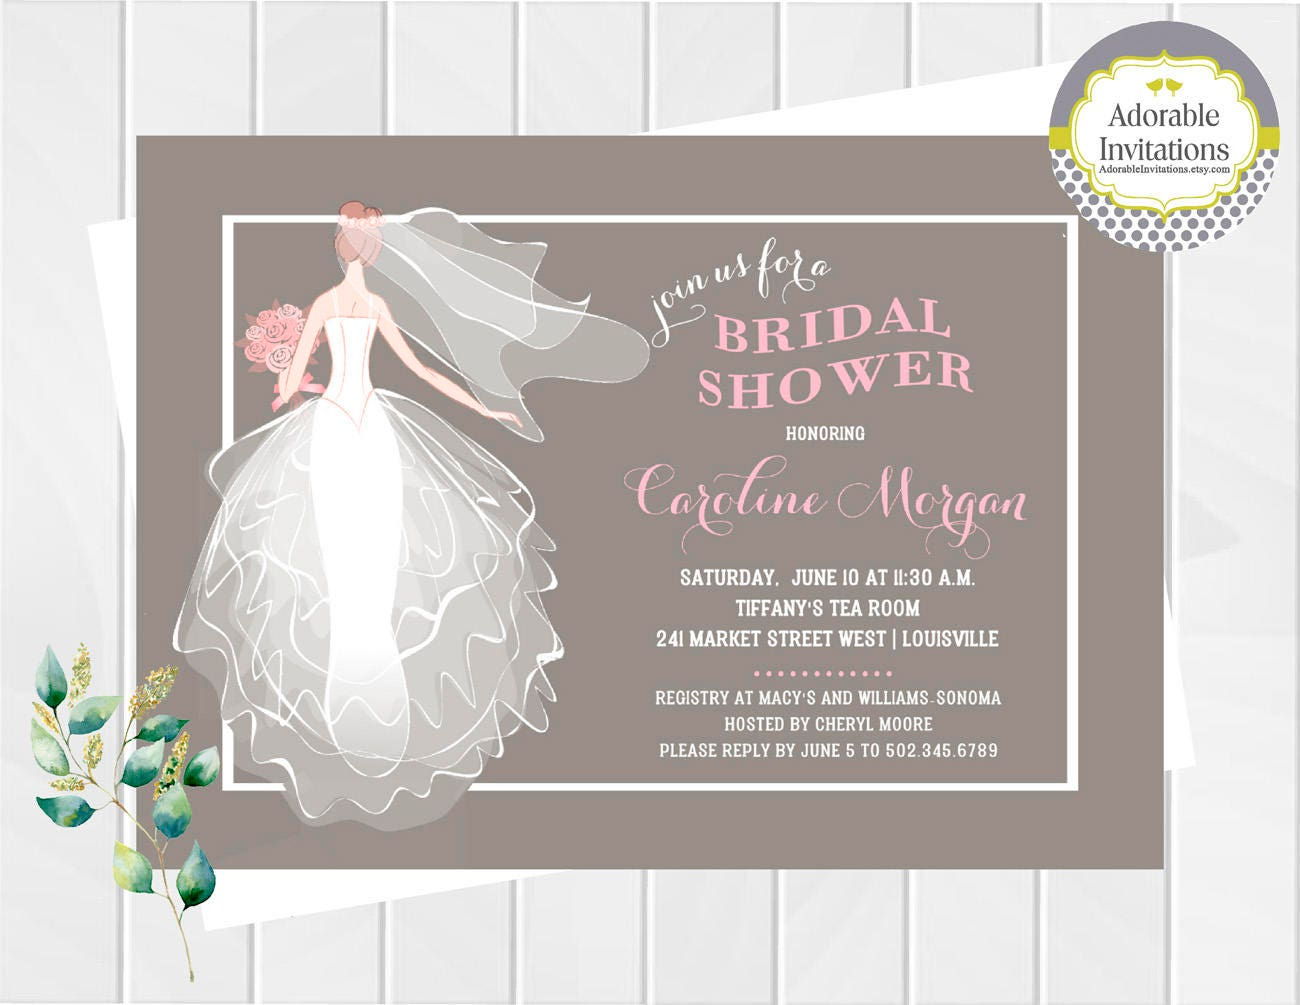 Wedding dress bridal shower invitation bridesmaids luncheon for Wedding dress bridal shower invitations